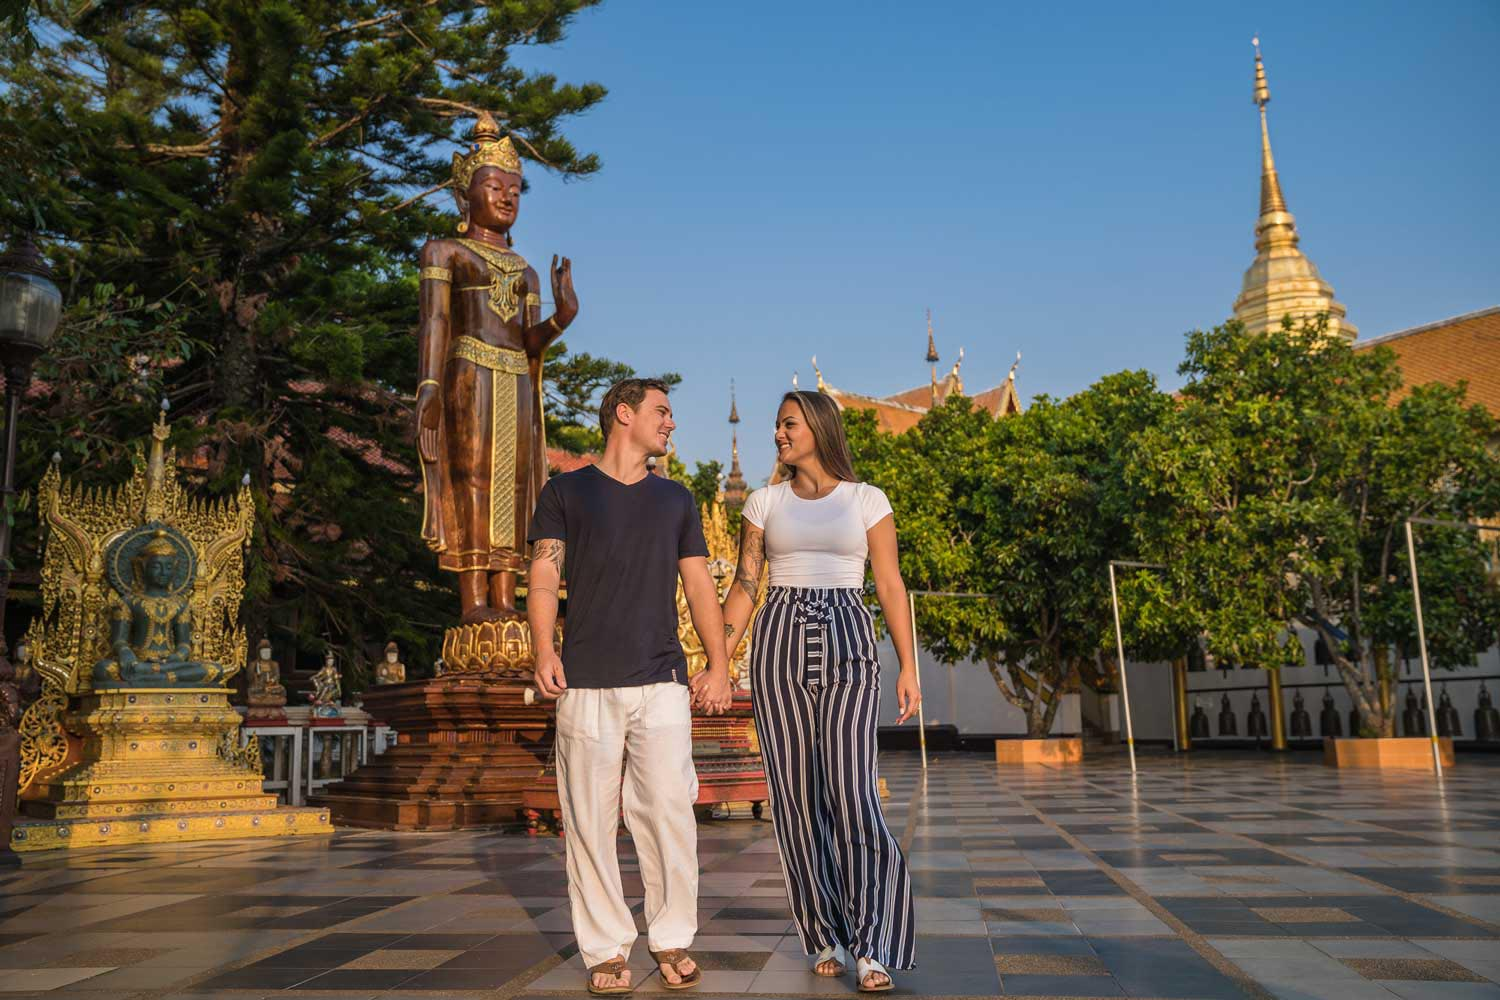 Chiang Mai city photo tours